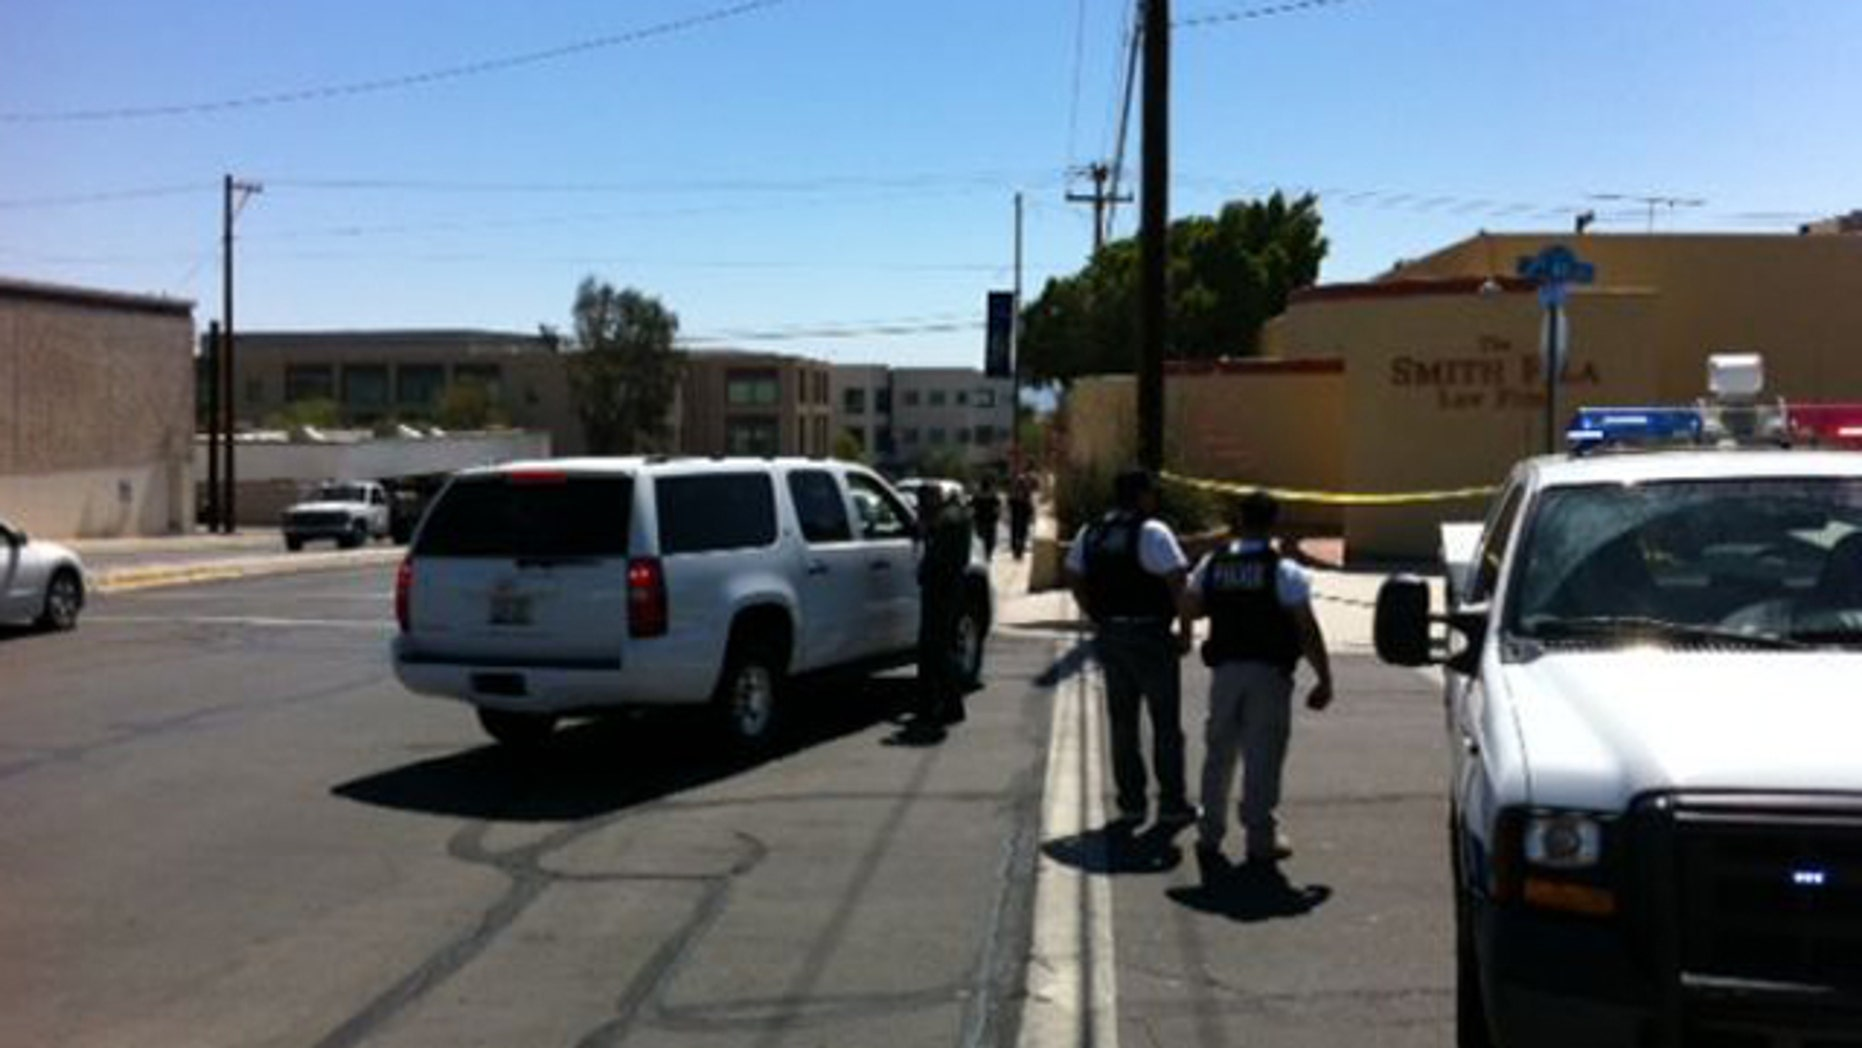 June 2: Police investigate a crime scene after a series of shootings occurred around Yuma, Arizona.